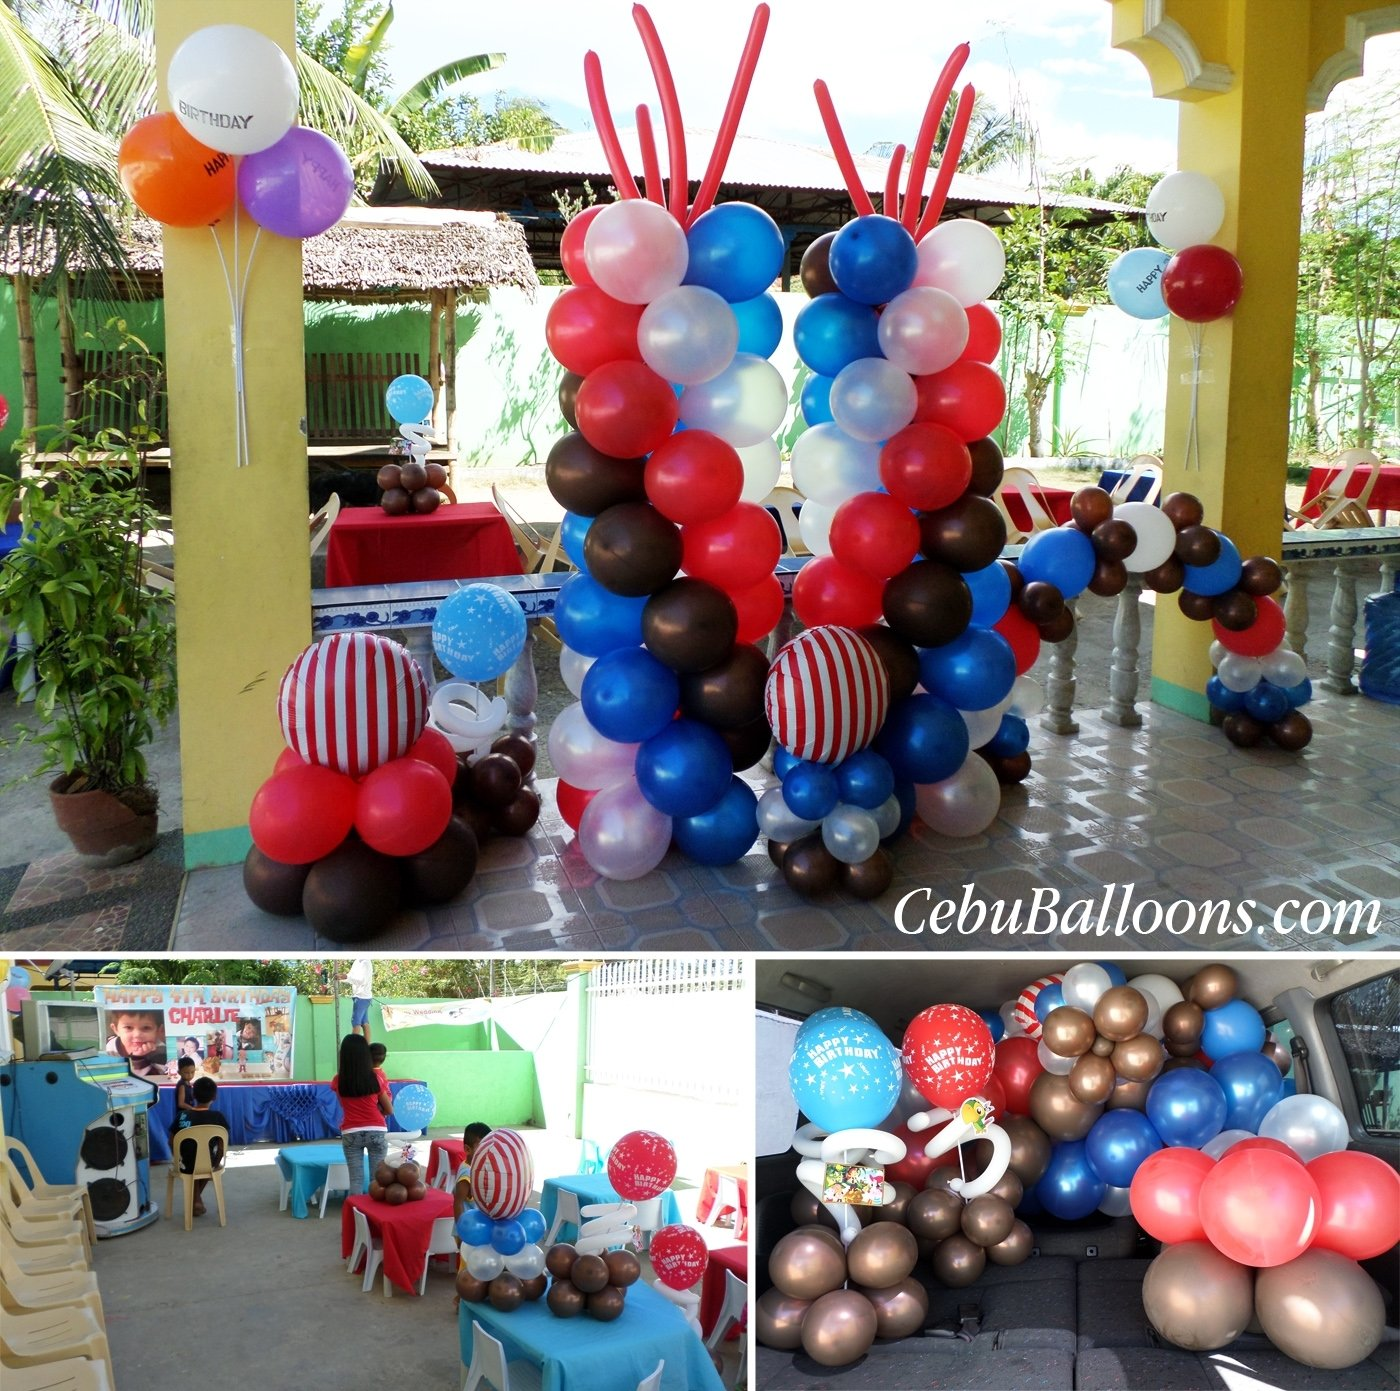 10 Lovable Jake And The Neverland Pirates Decoration Ideas best jake and the neverland pirates party decoration ideas room 2020